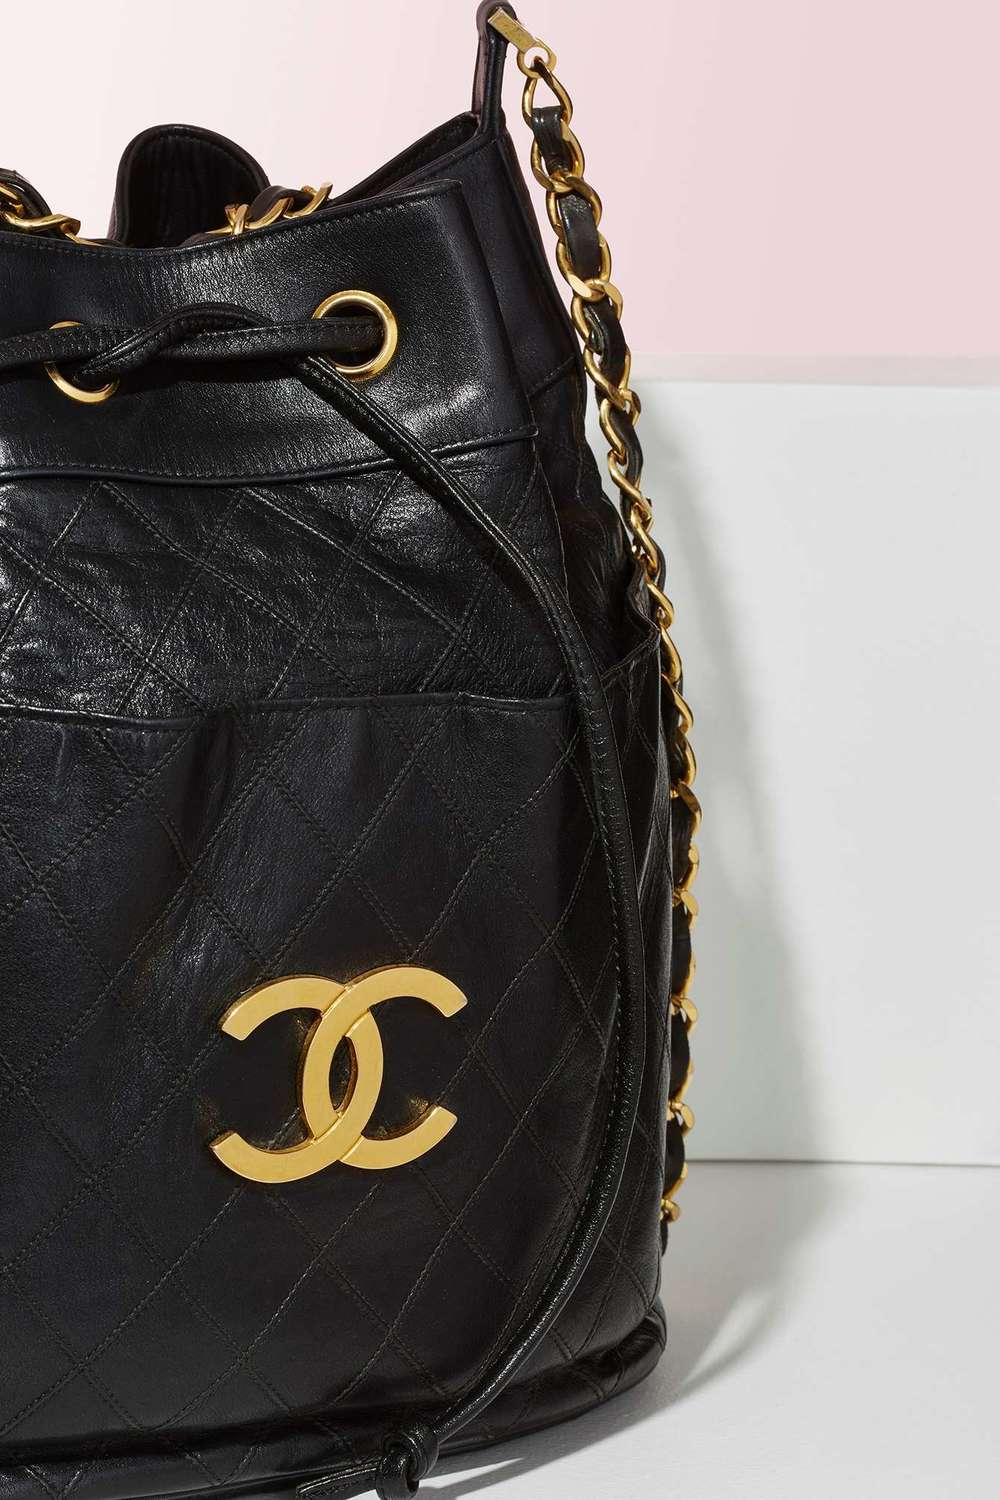 Quilted lambskin Chanel perfection. If you are a fan of Vintage luxury  goods (and aren t we all ), this beauty is up for grabs at Nasty Gal. 3bd5583a0c